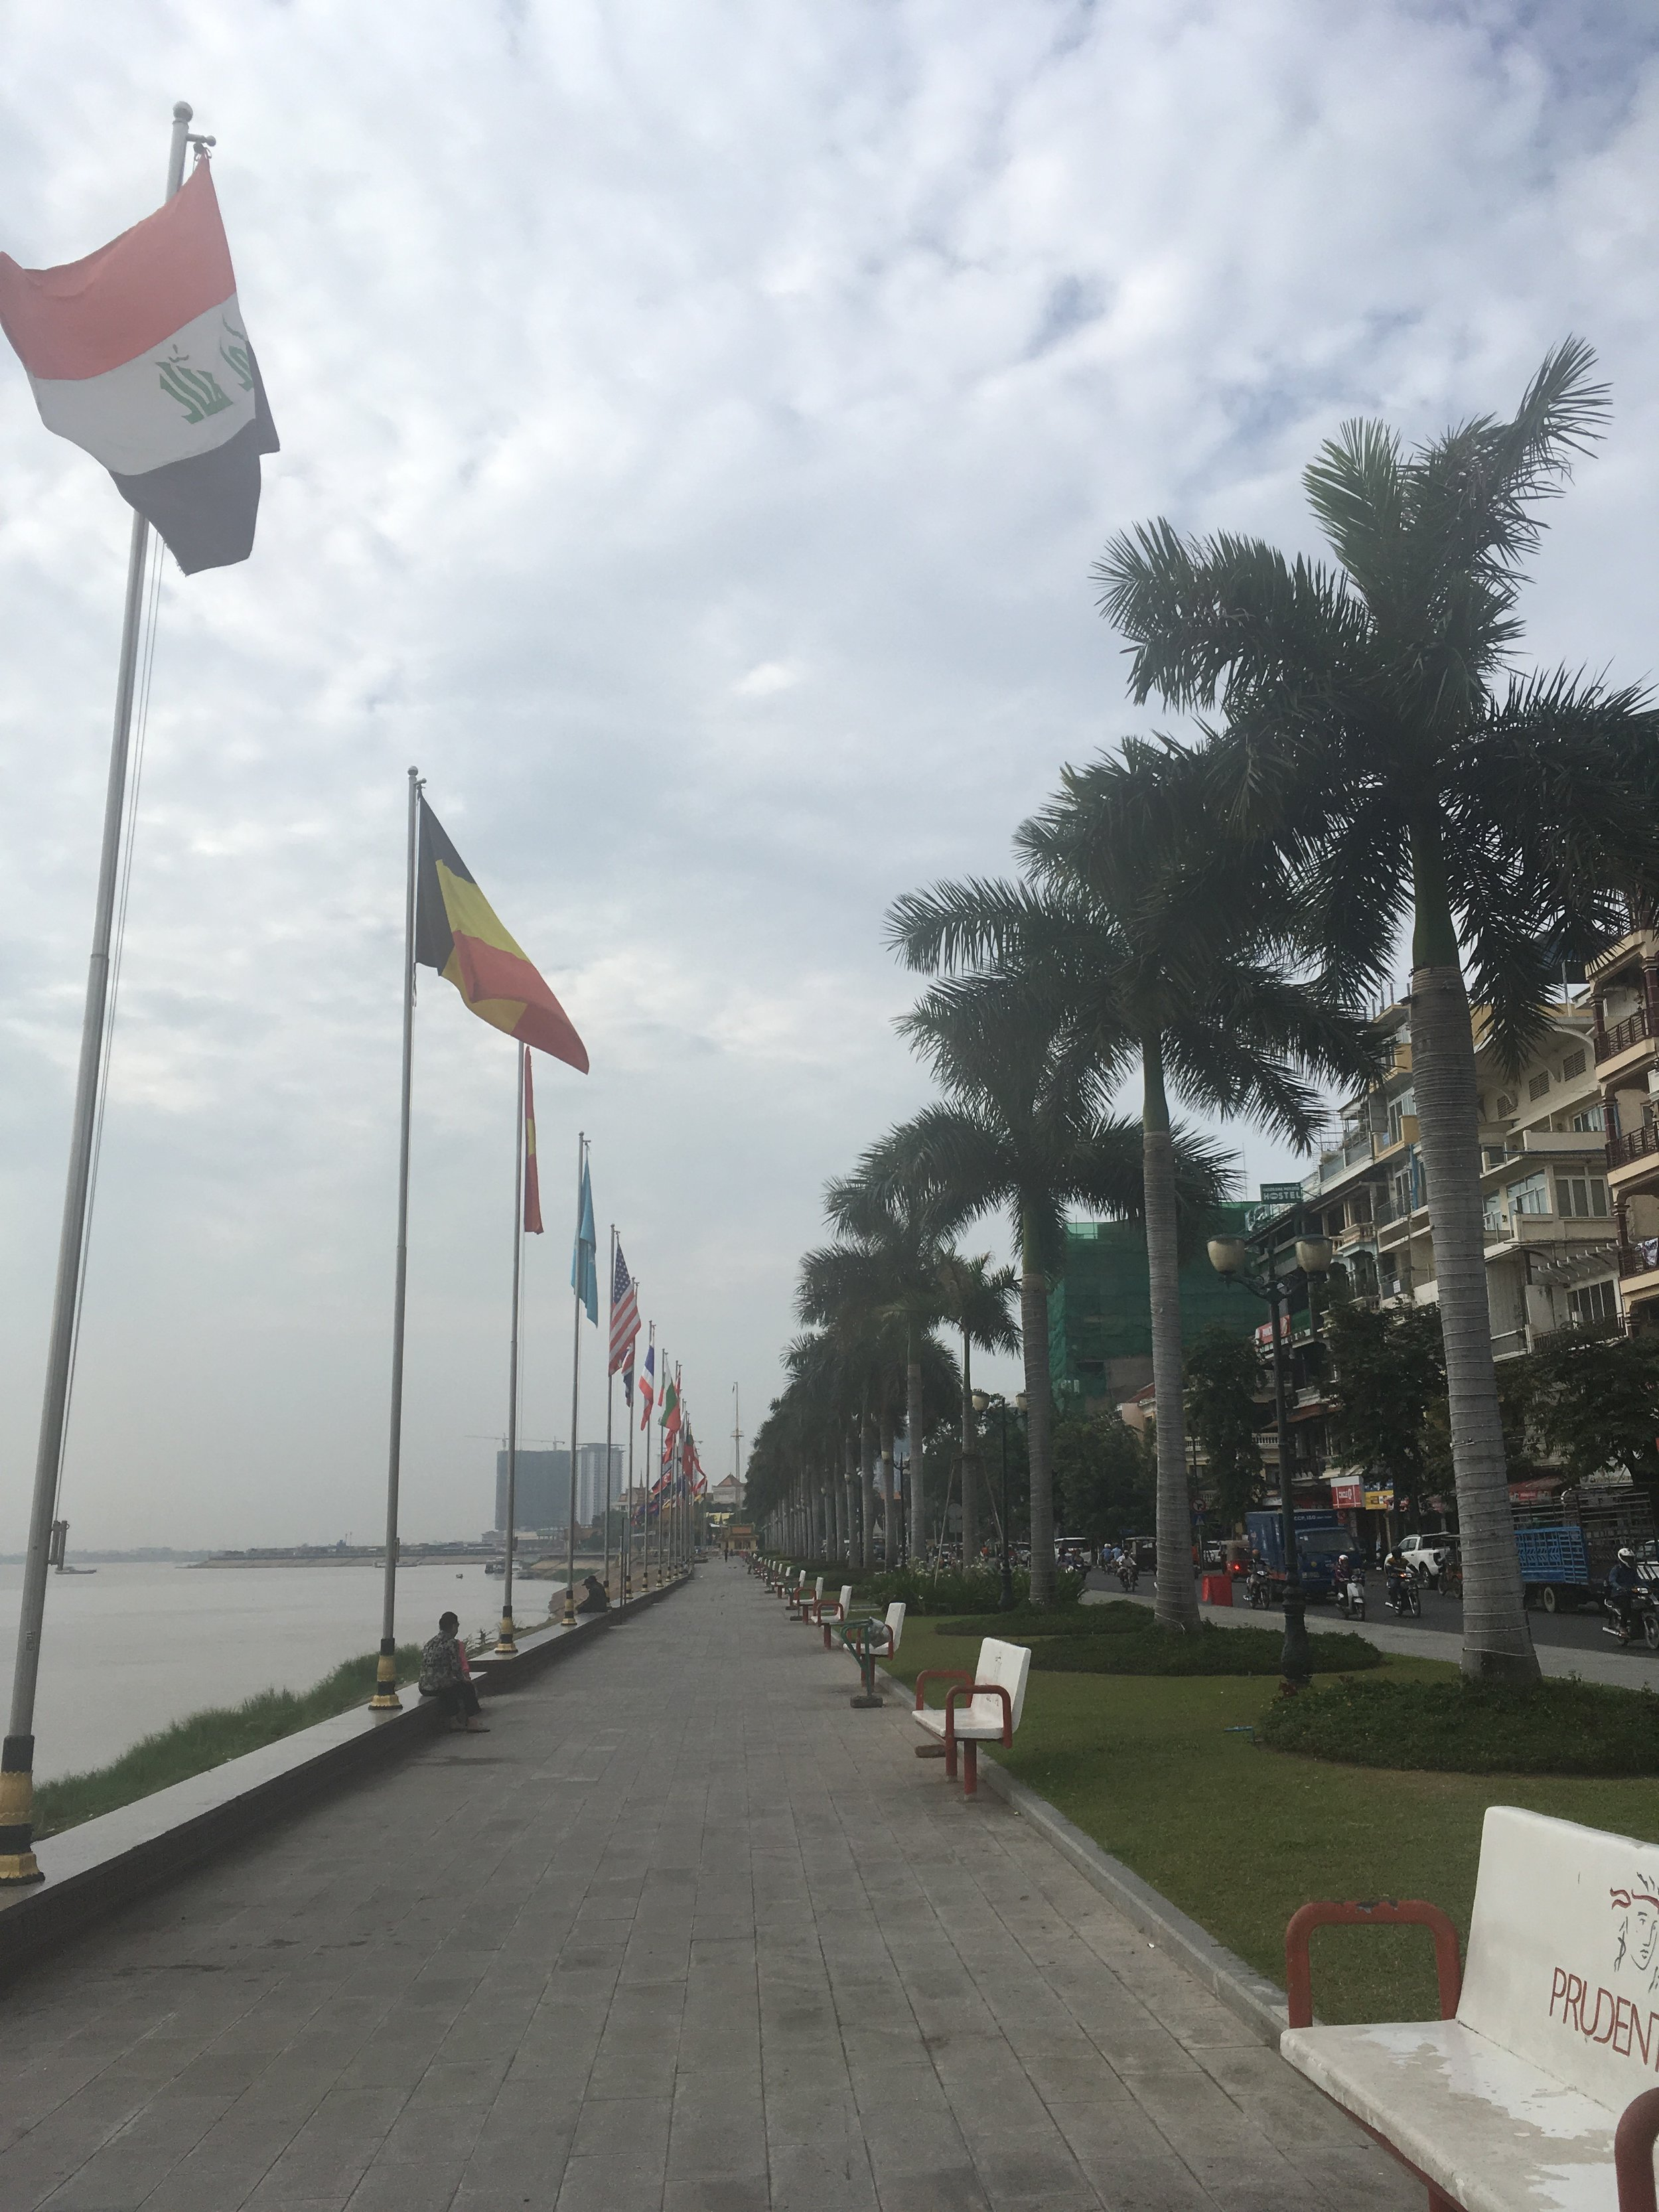 Out for an early morning run along the riverfront path in downtown Phnom Penh